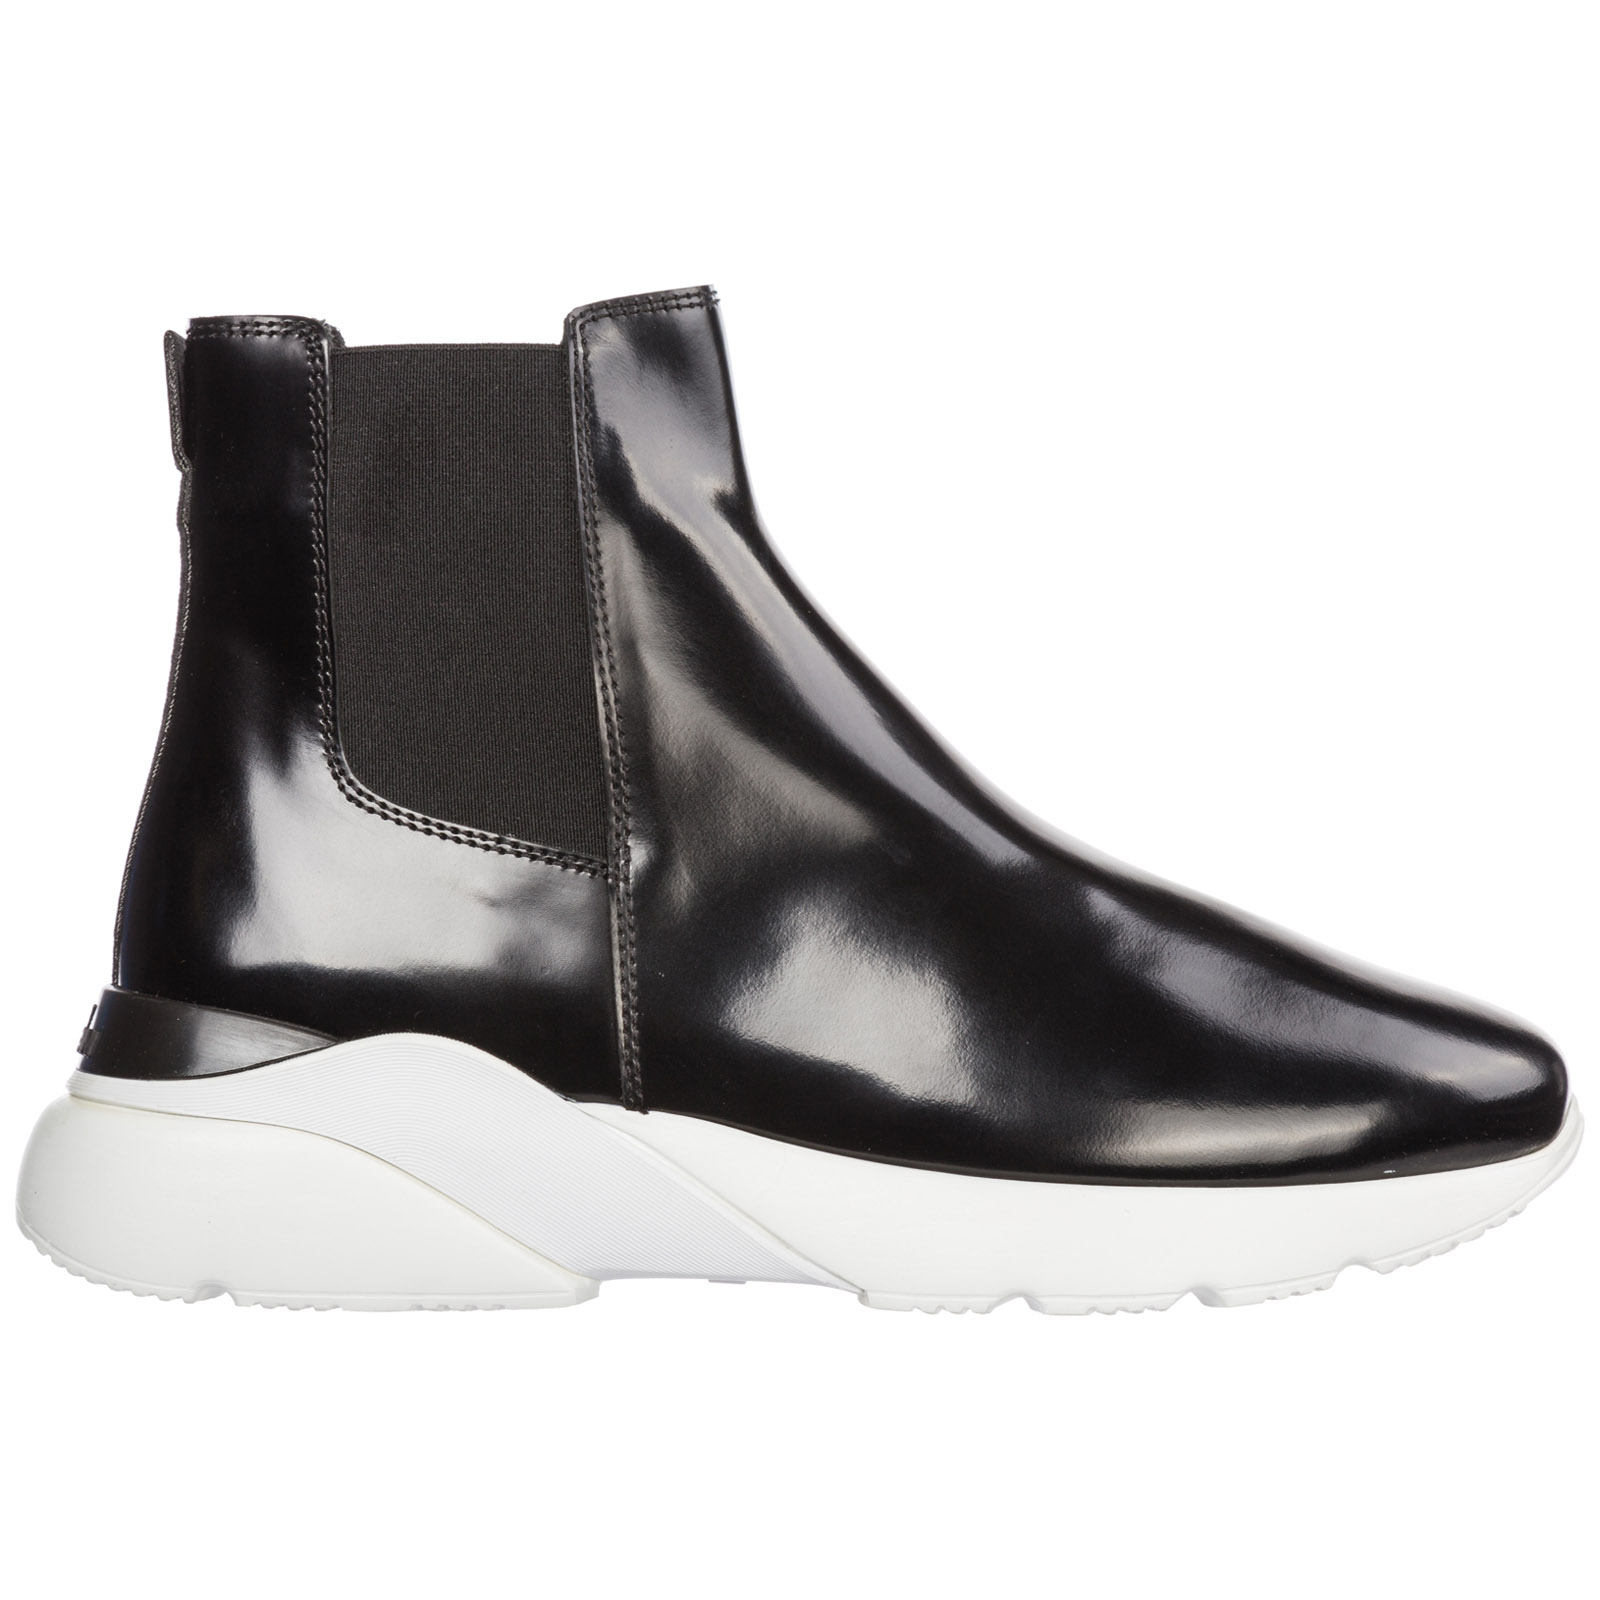 Hogan Women's Leather Ankle Boots Booties Active One In Black